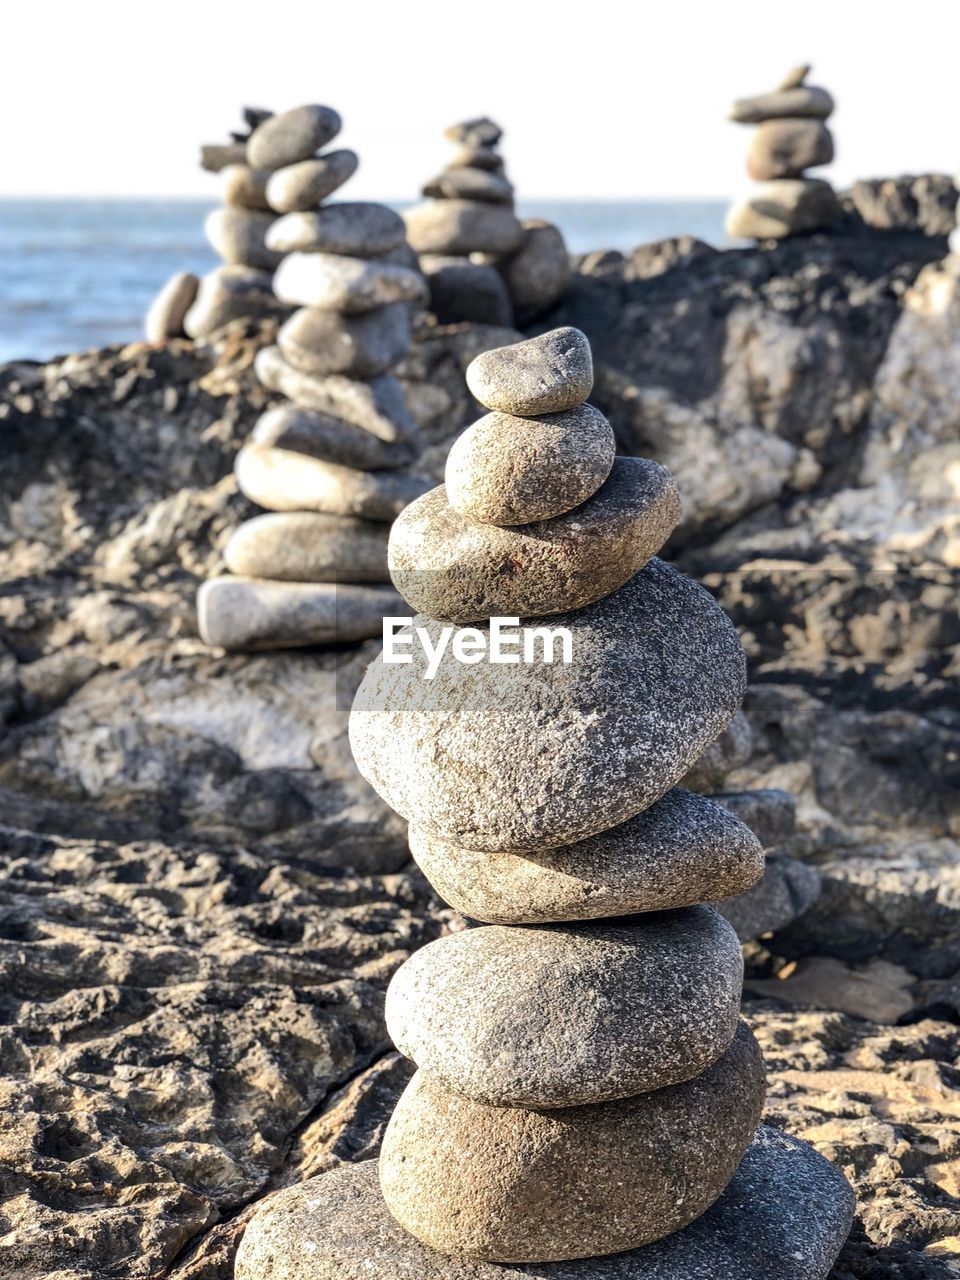 stack, balance, solid, rock, zen-like, stone - object, nature, rock - object, land, pebble, beach, tranquility, stone, focus on foreground, no people, sunlight, day, sky, water, tranquil scene, outdoors